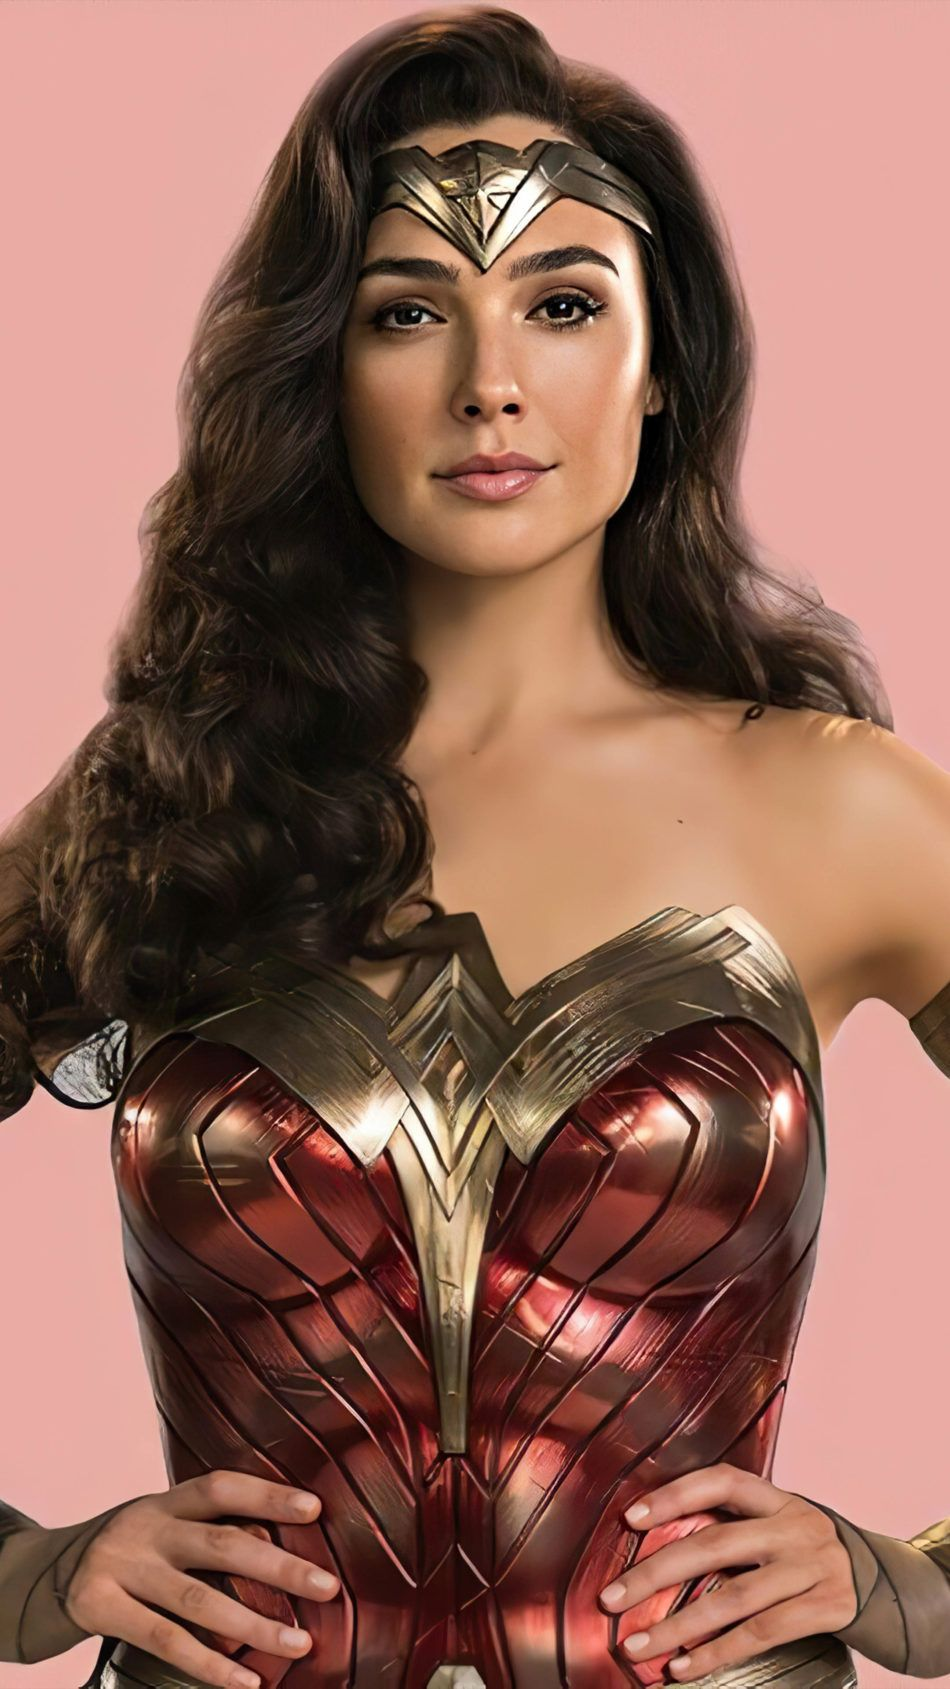 Gal Gadot In Movie Wonder Woman 1984 4k Ultra Hd Mobile Wallpaper In 2020 Gal Gadot Wonder Woman Wonder Woman Movie Gal Gadot